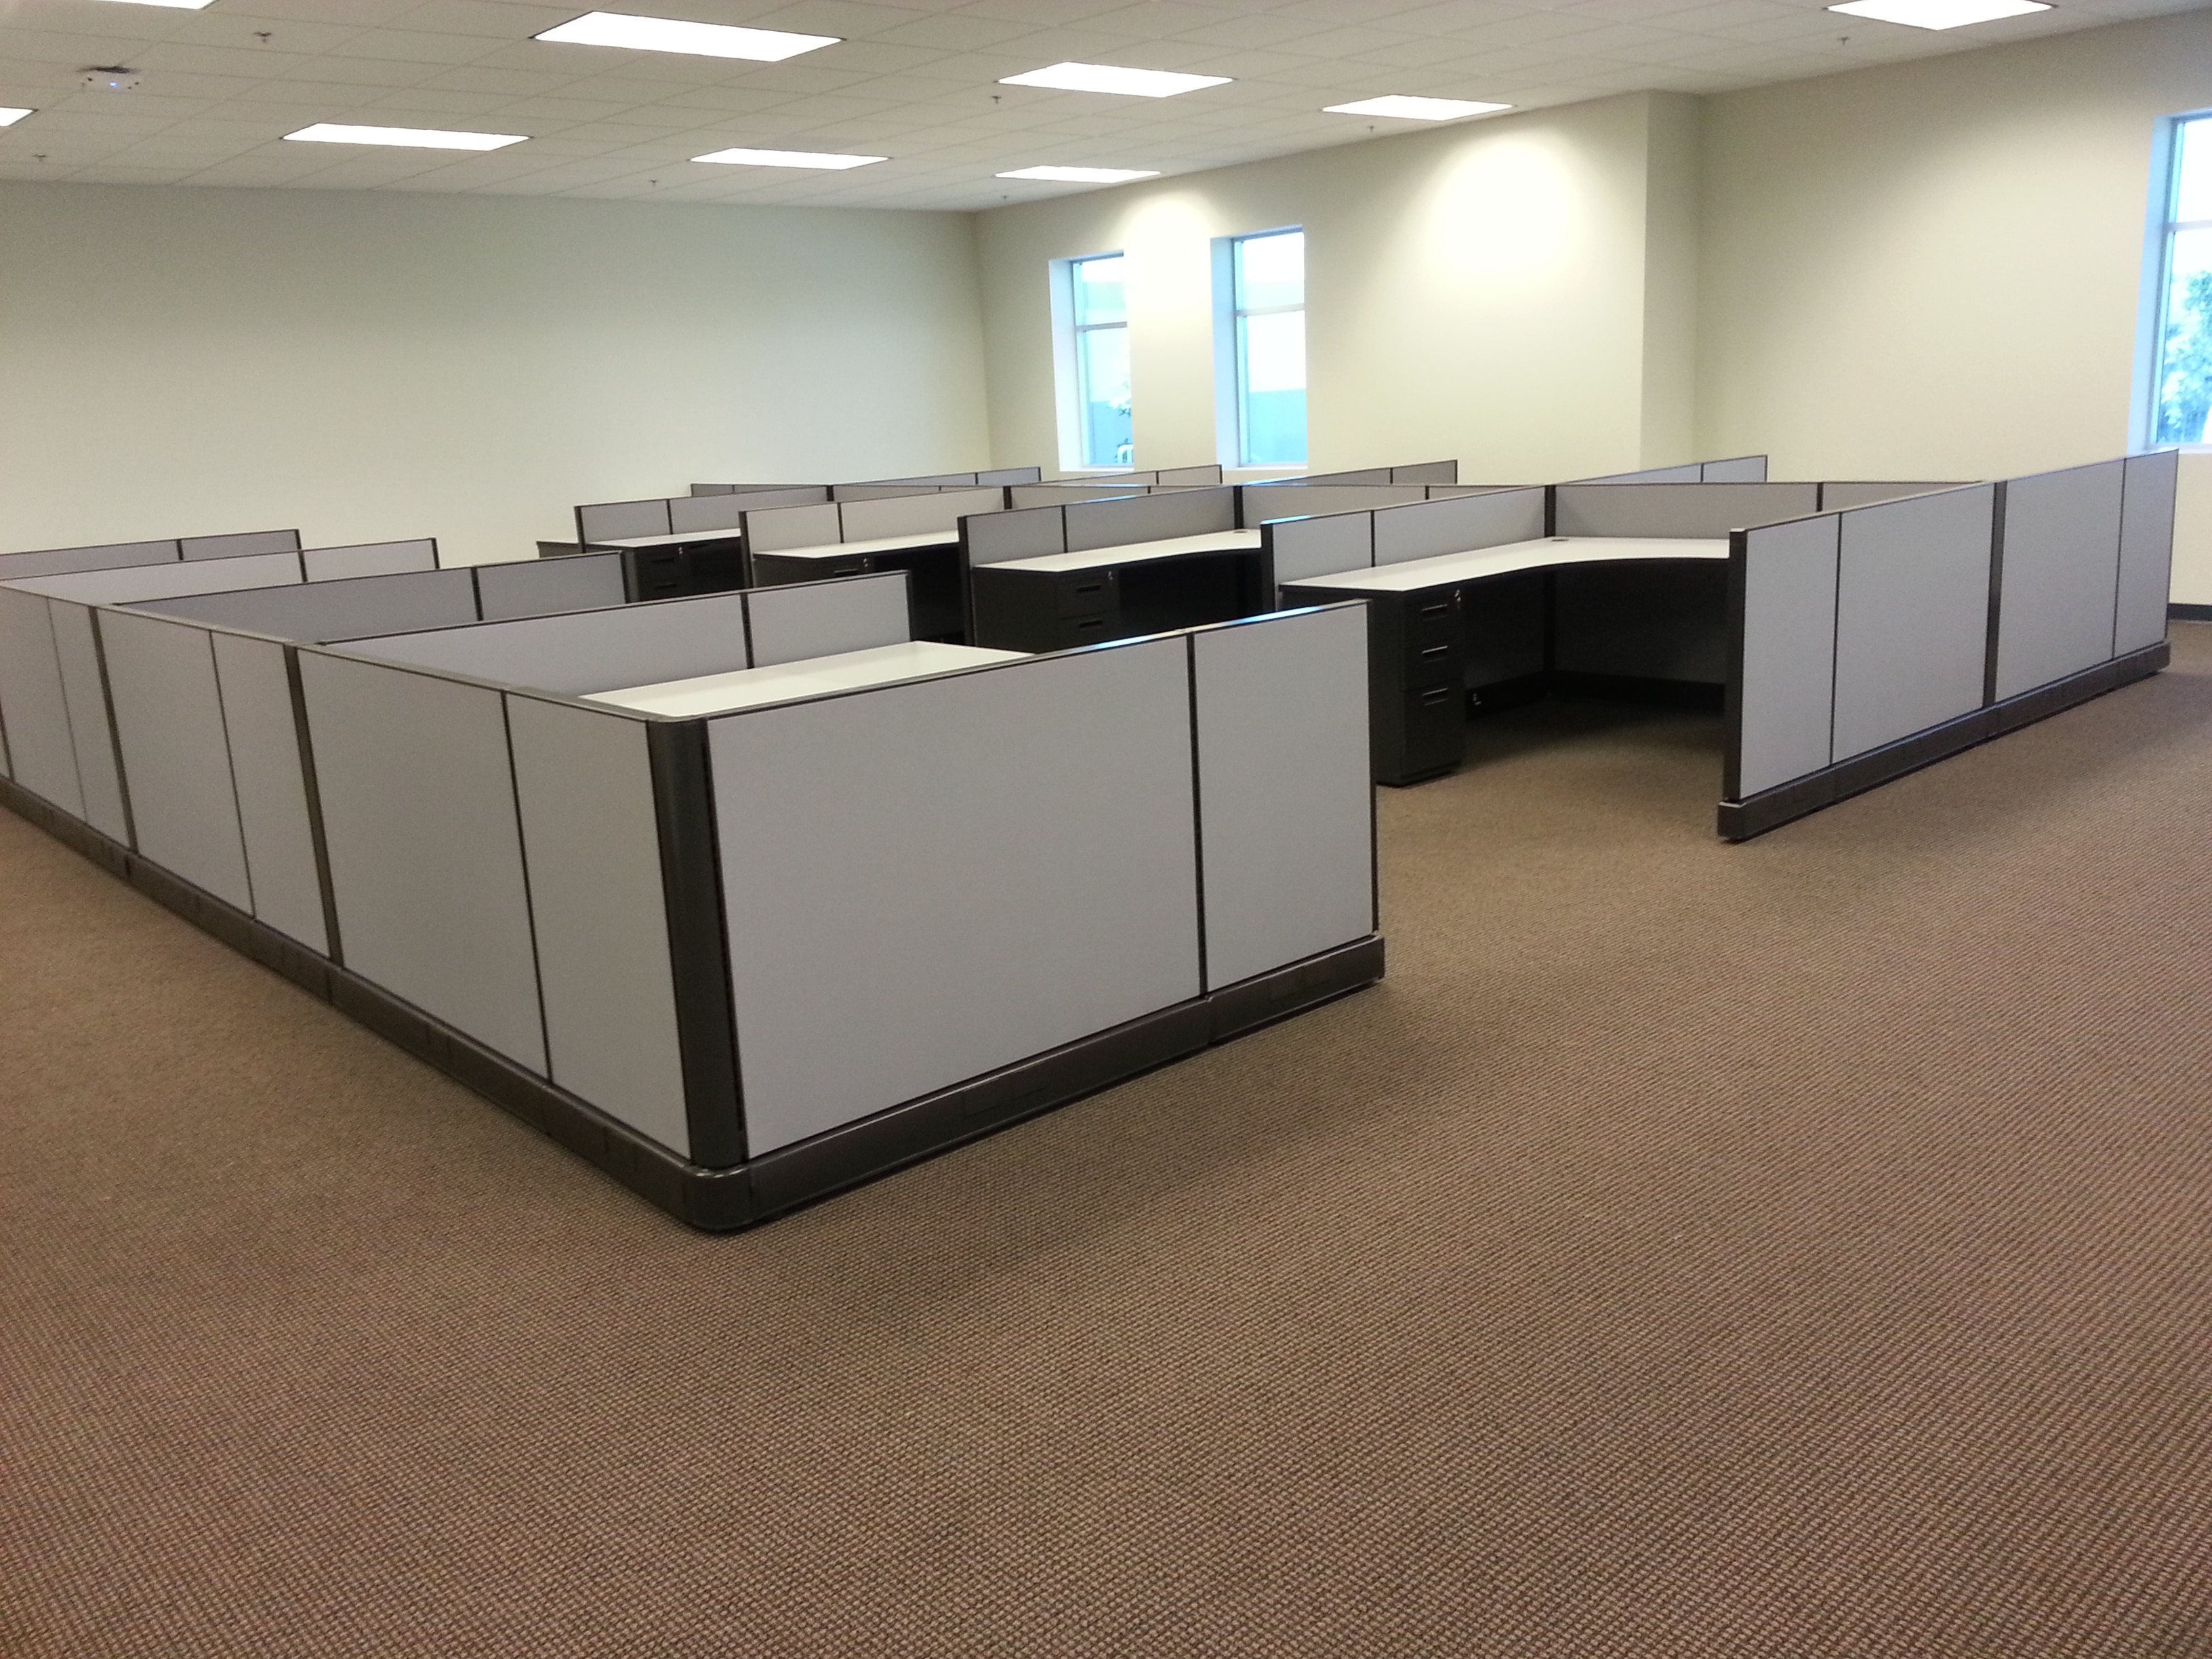 Pnp office furniture in ontario ca 91761 for Furniture ontario ca